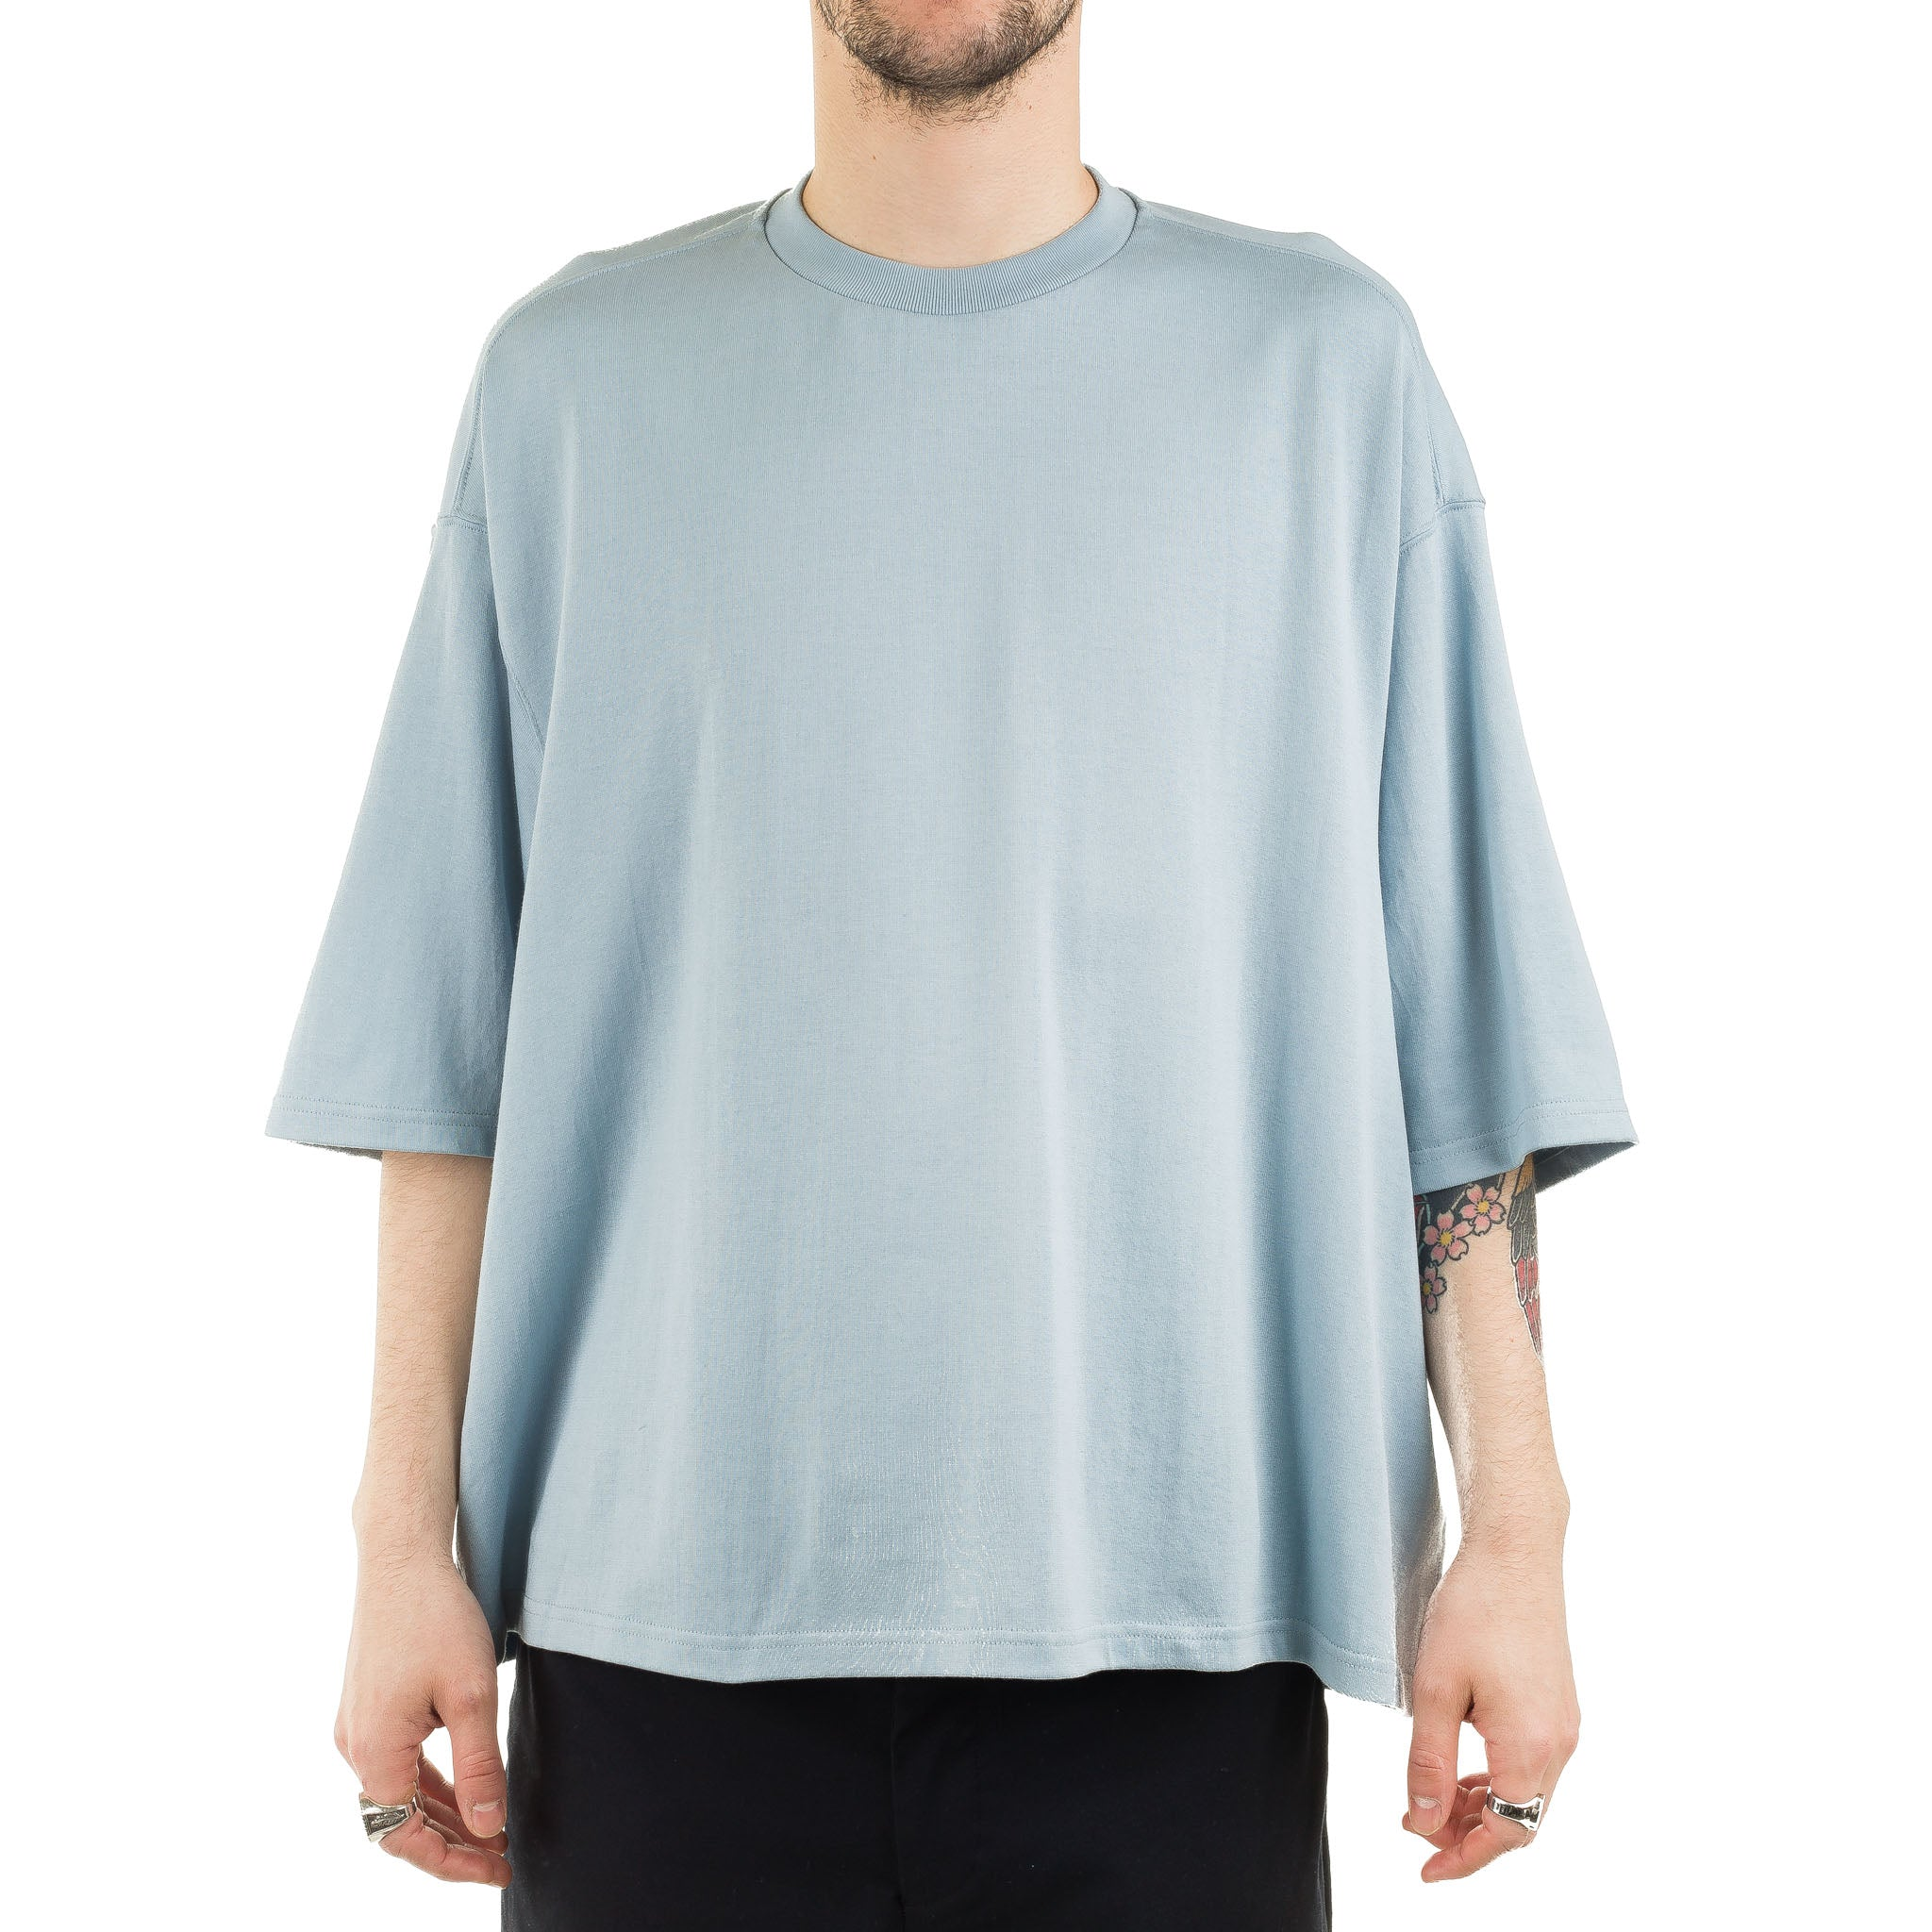 Short Length S/S Tee DWSOA058 Sax